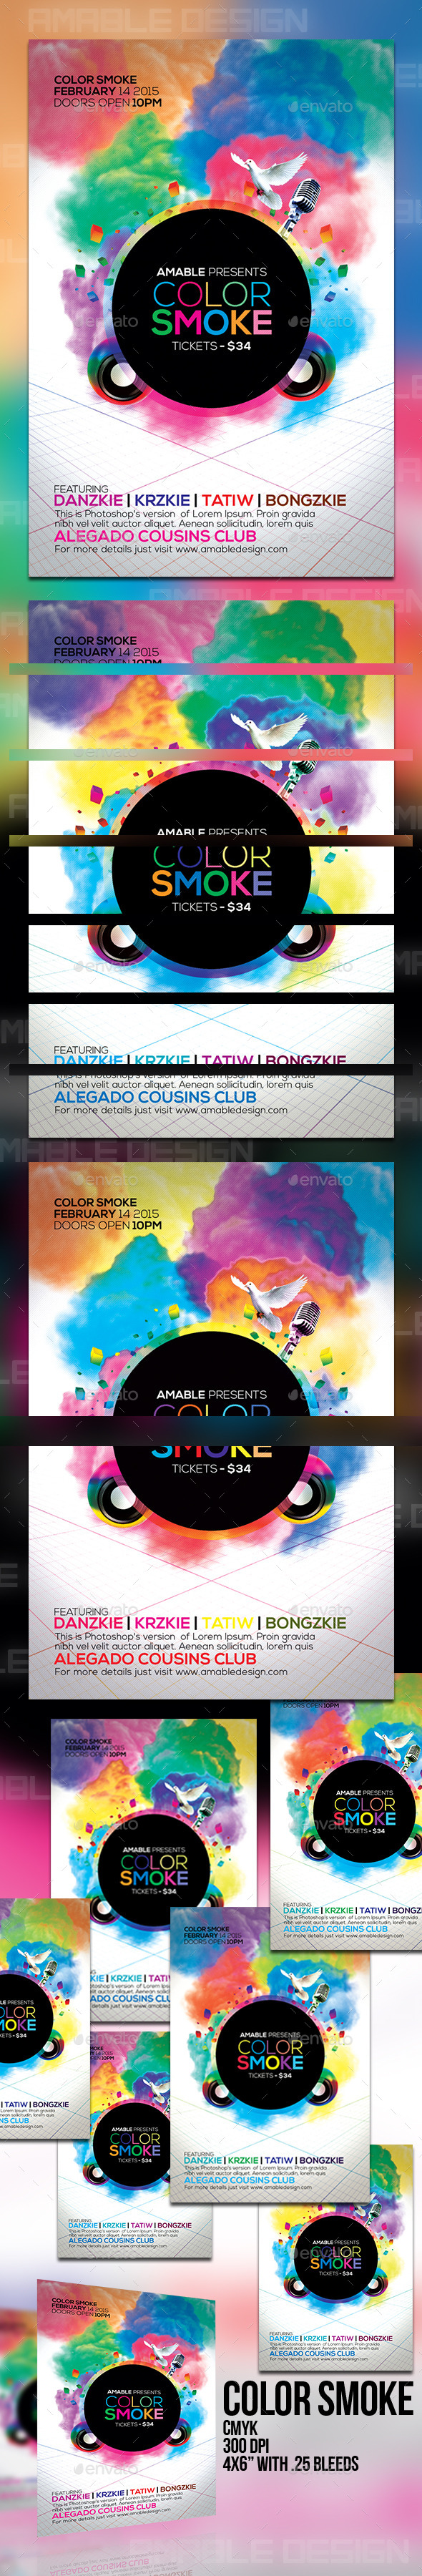 GraphicRiver Color Smoke Flyer 10382686